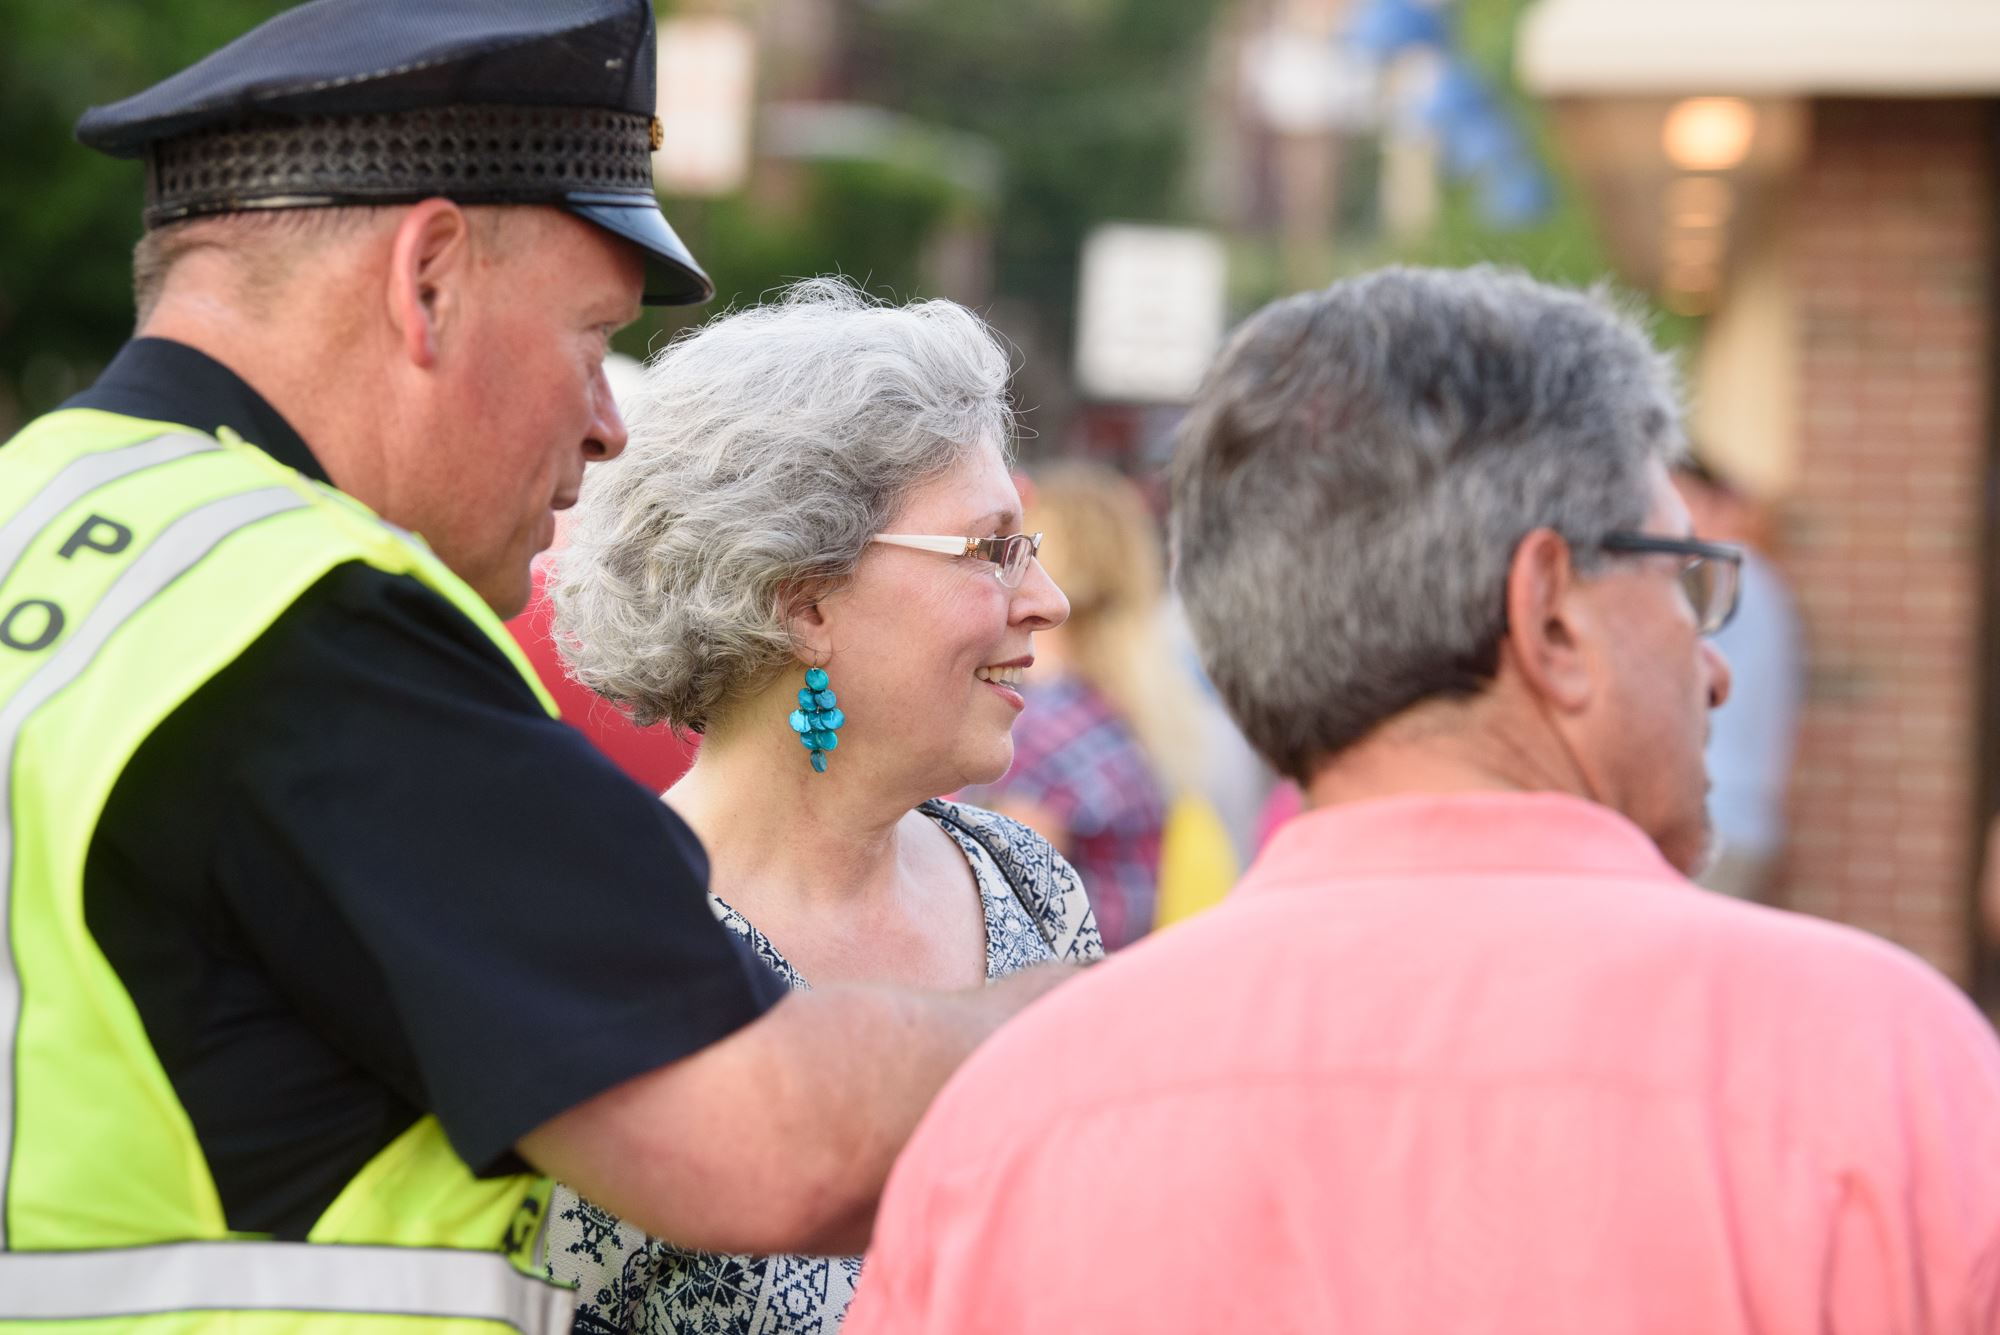 070318_FitchburgCivicDays-61